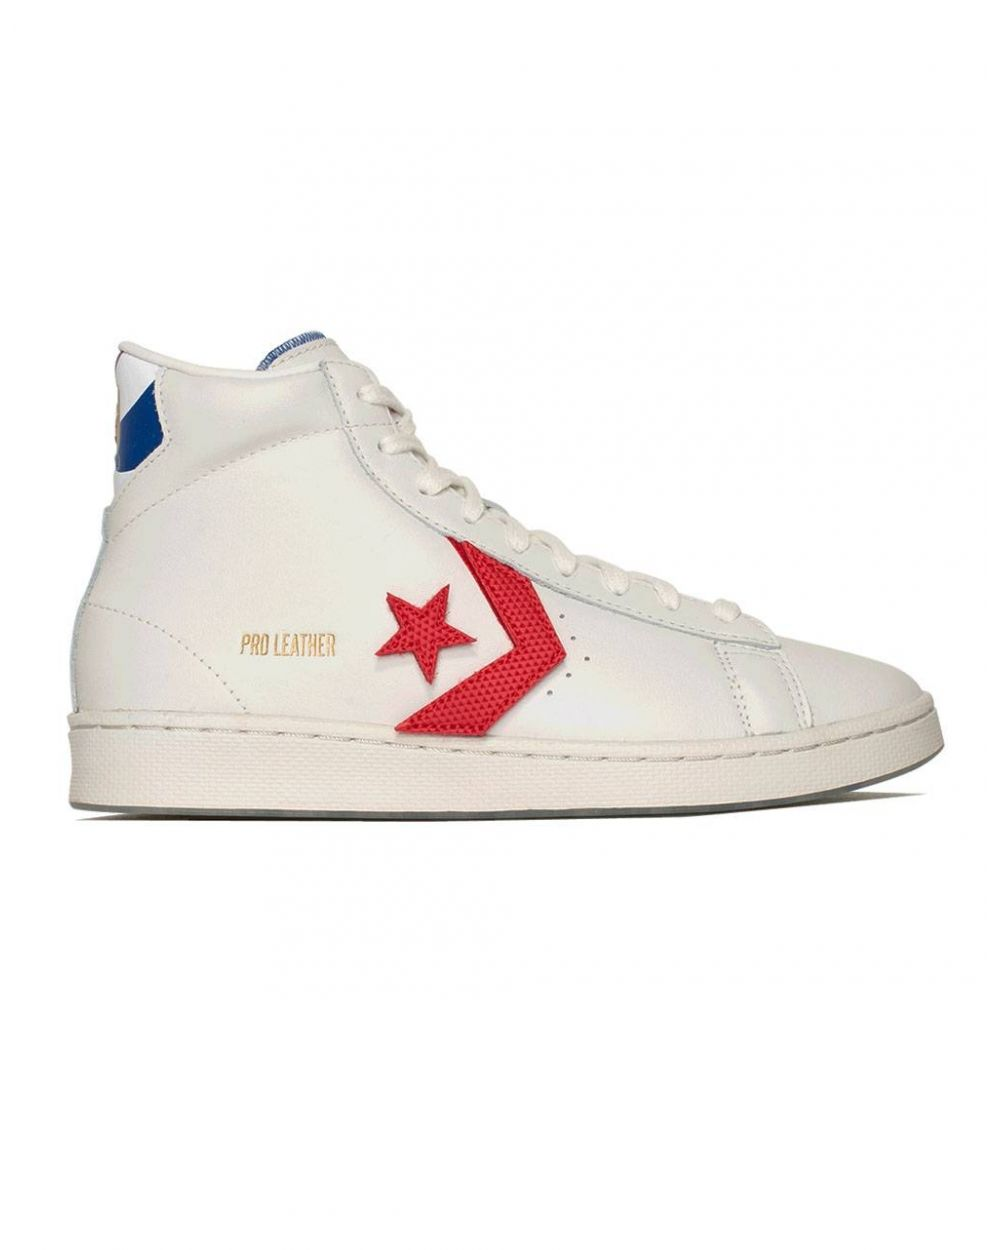 Converse Pro Leather Birth Of Light - Vintage white Converse Sneakers 120,00€